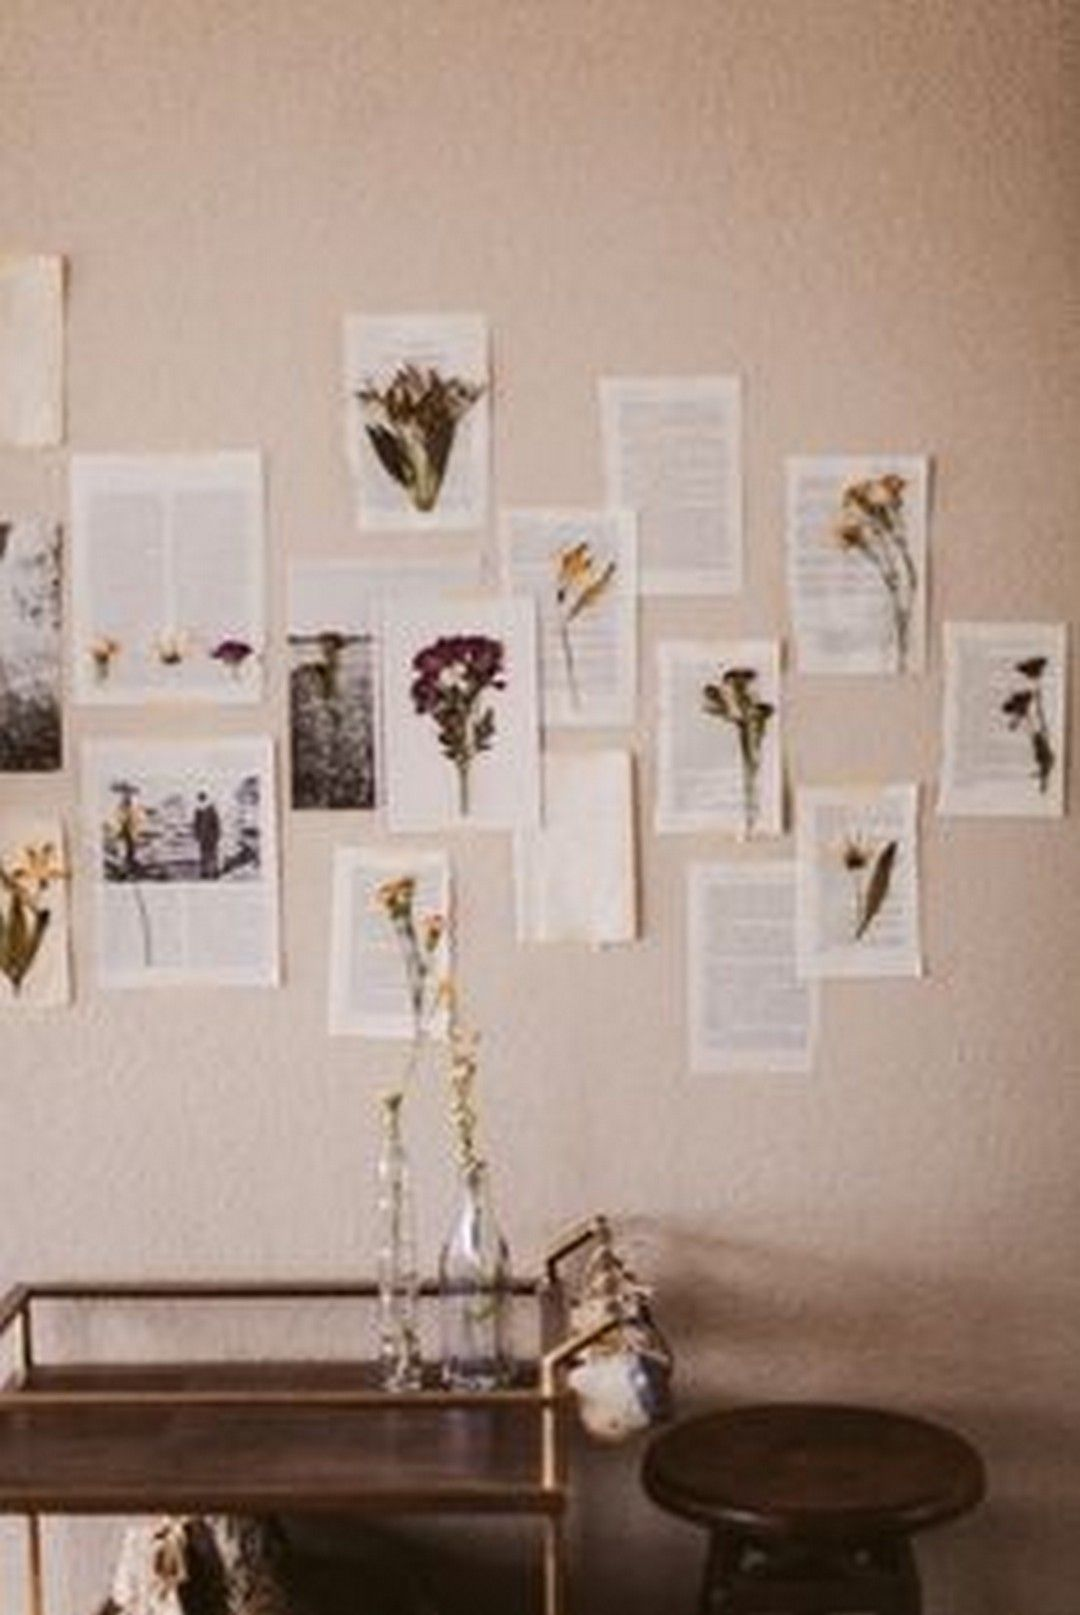 10 Simple Things to Decorate Room with These DIY Wall Decor Ideas images